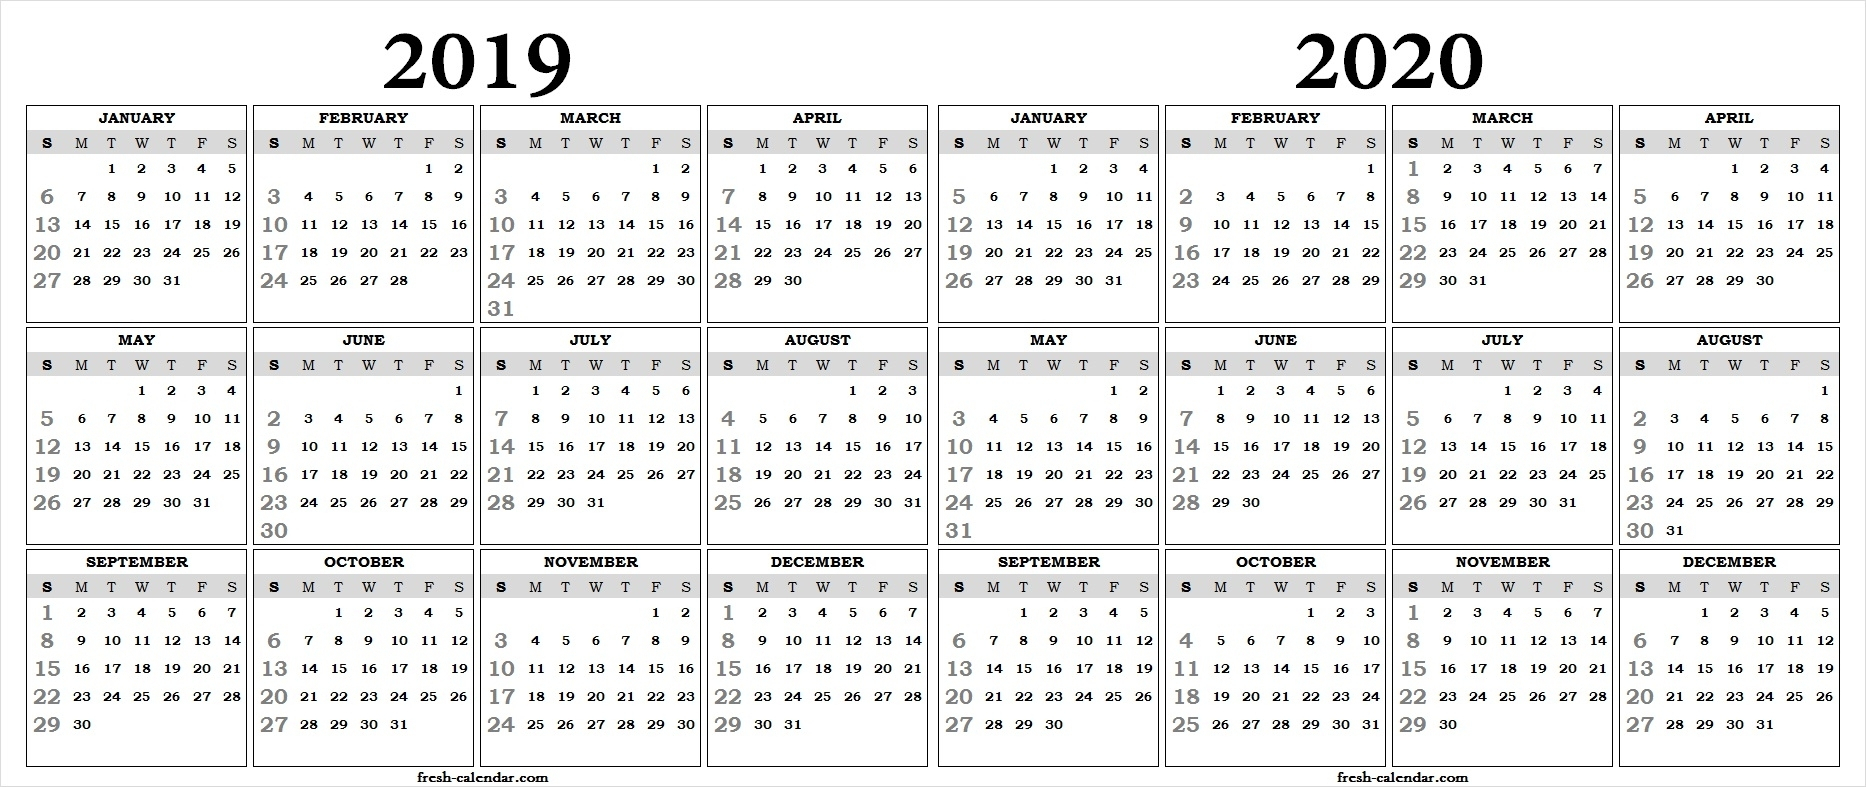 Islamic Calendar 2019 2020 - Google Search pertaining to 2020 Aramco Calendar